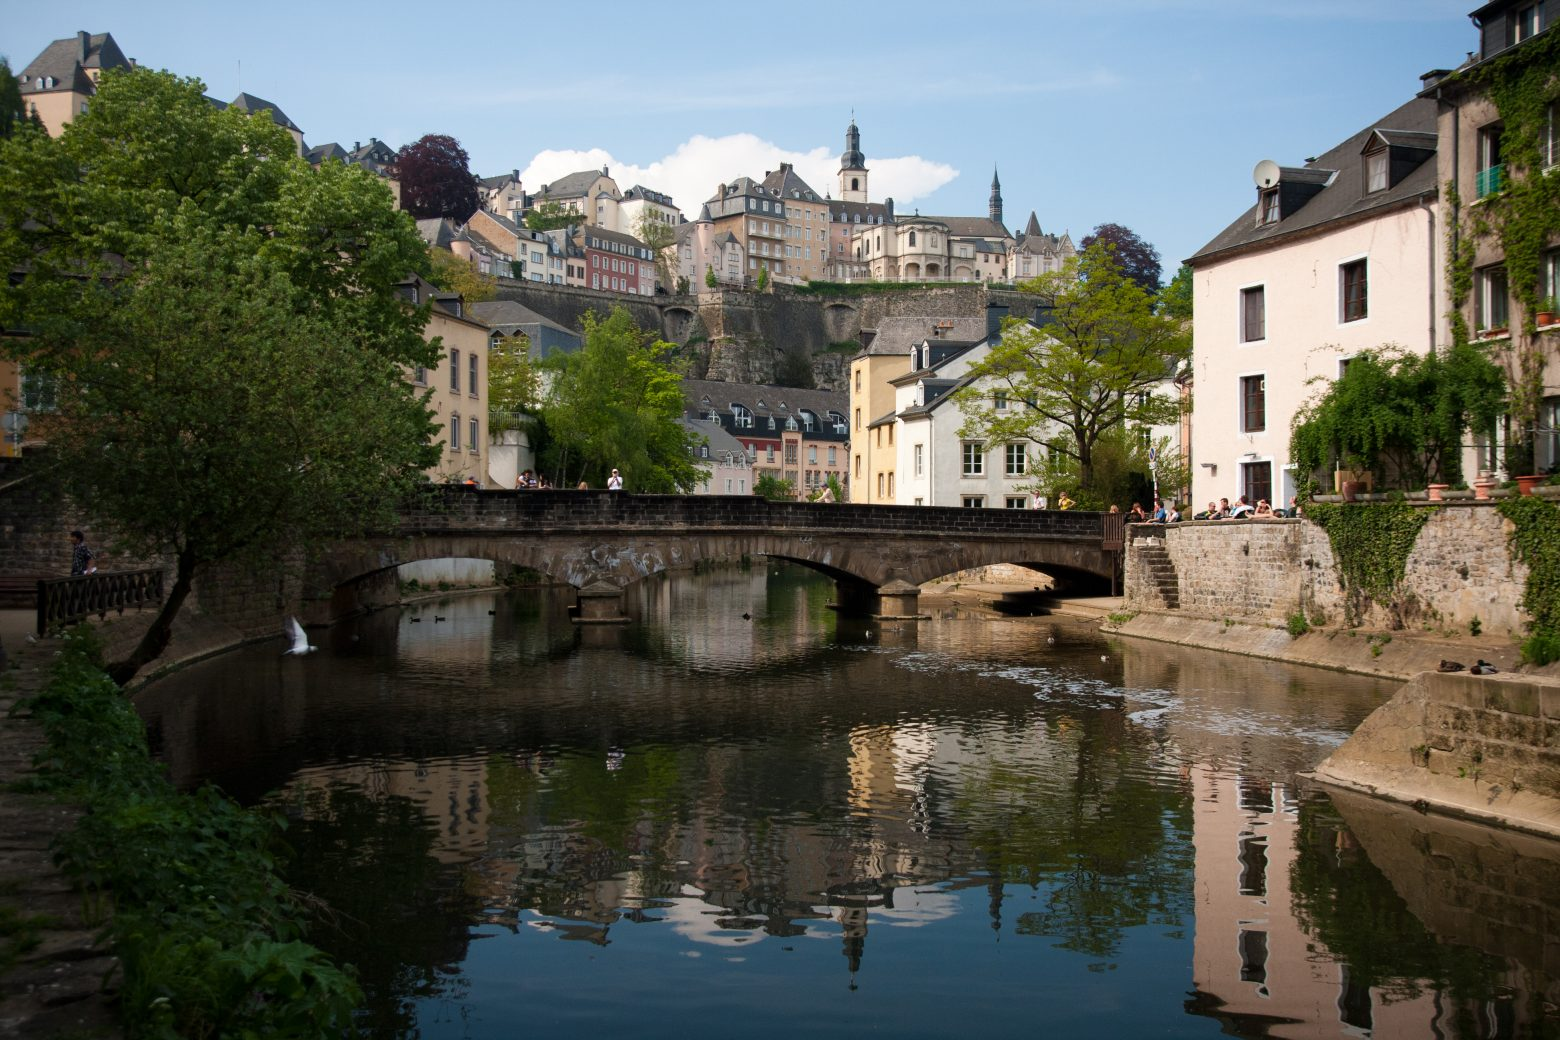 Les frontaliers France – Luxembourg